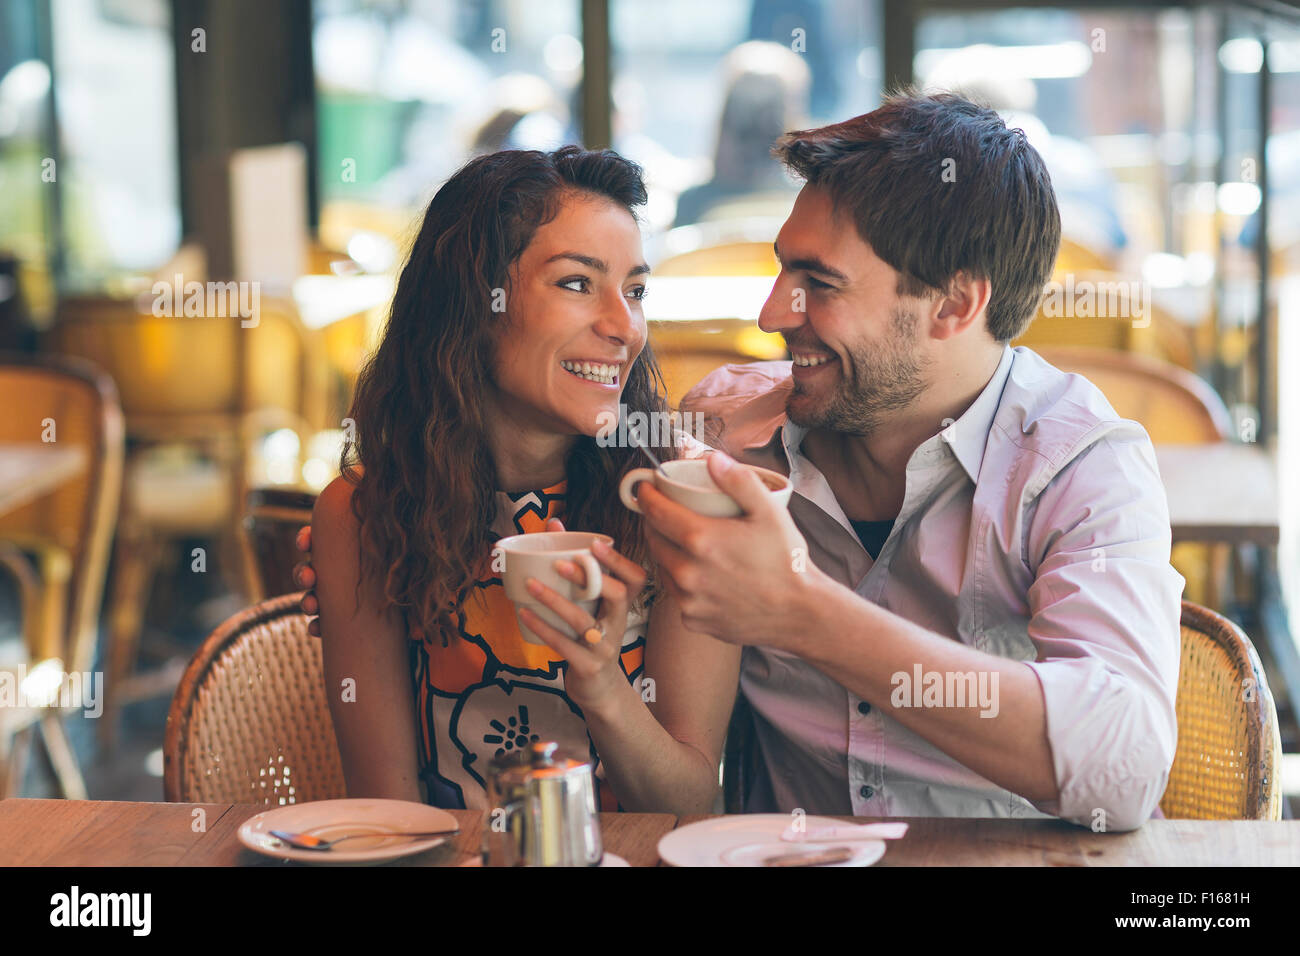 Couple dating in cafe, Paris - Stock Image